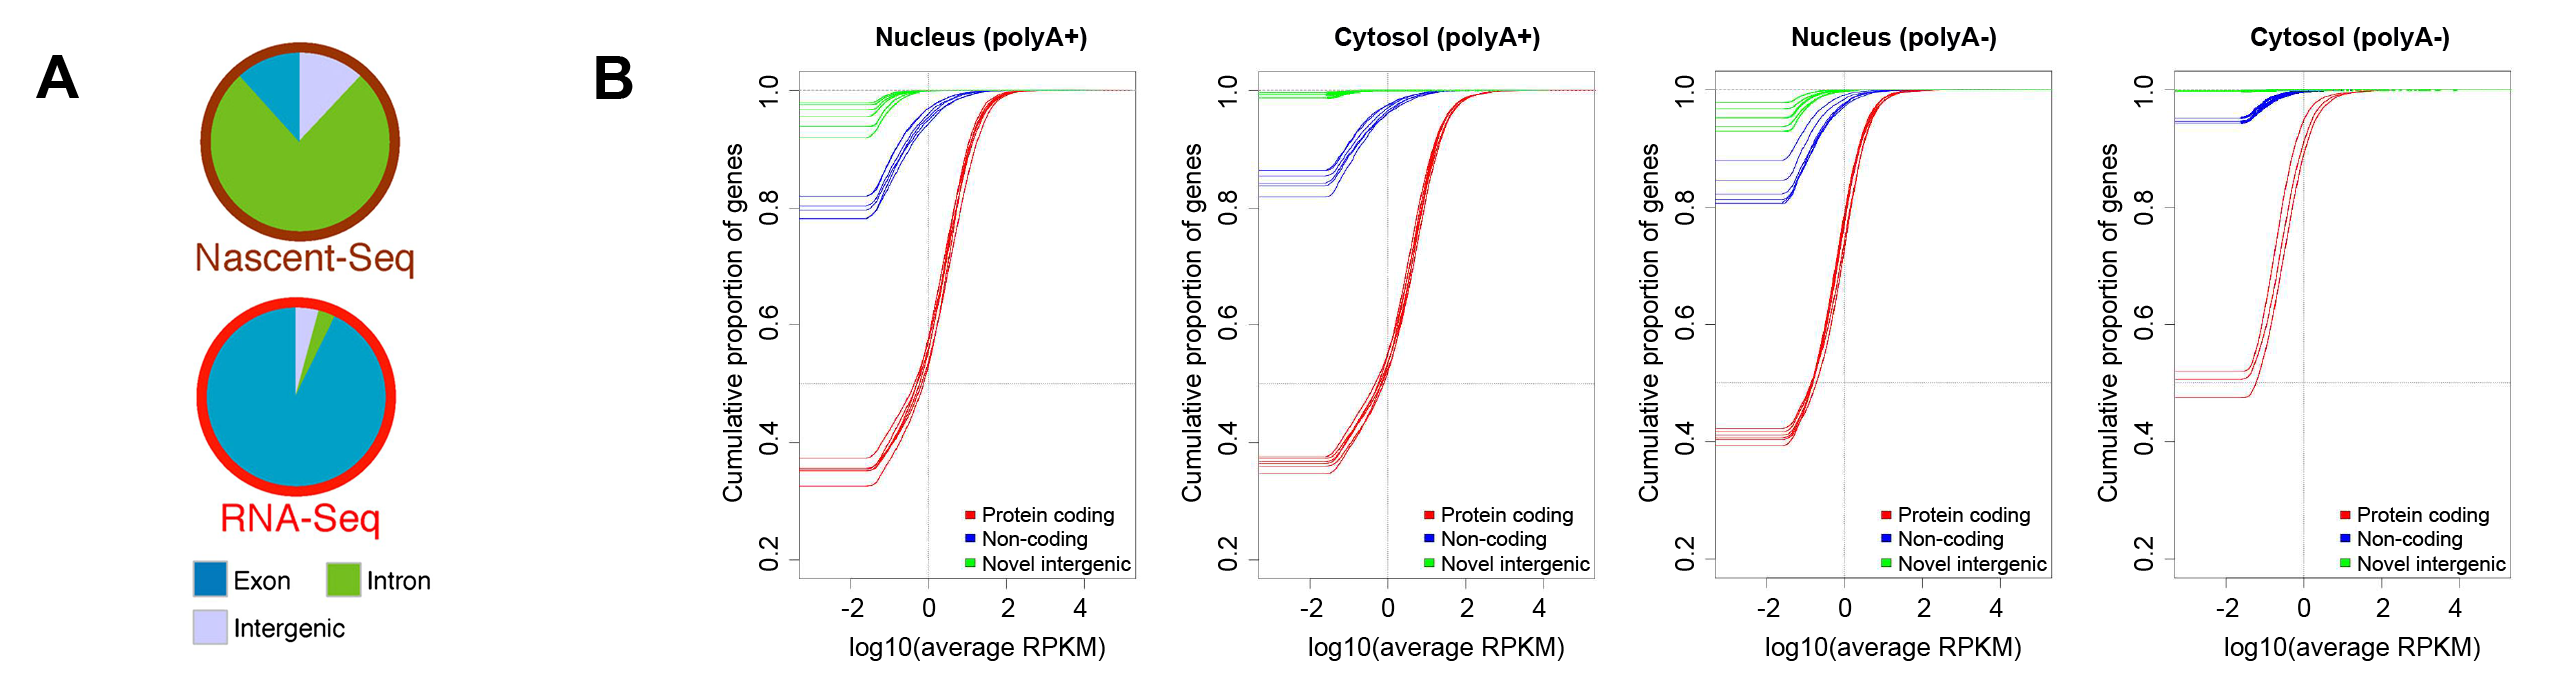 Levels of protein-coding and intergenic RNAs in mammalian cells.